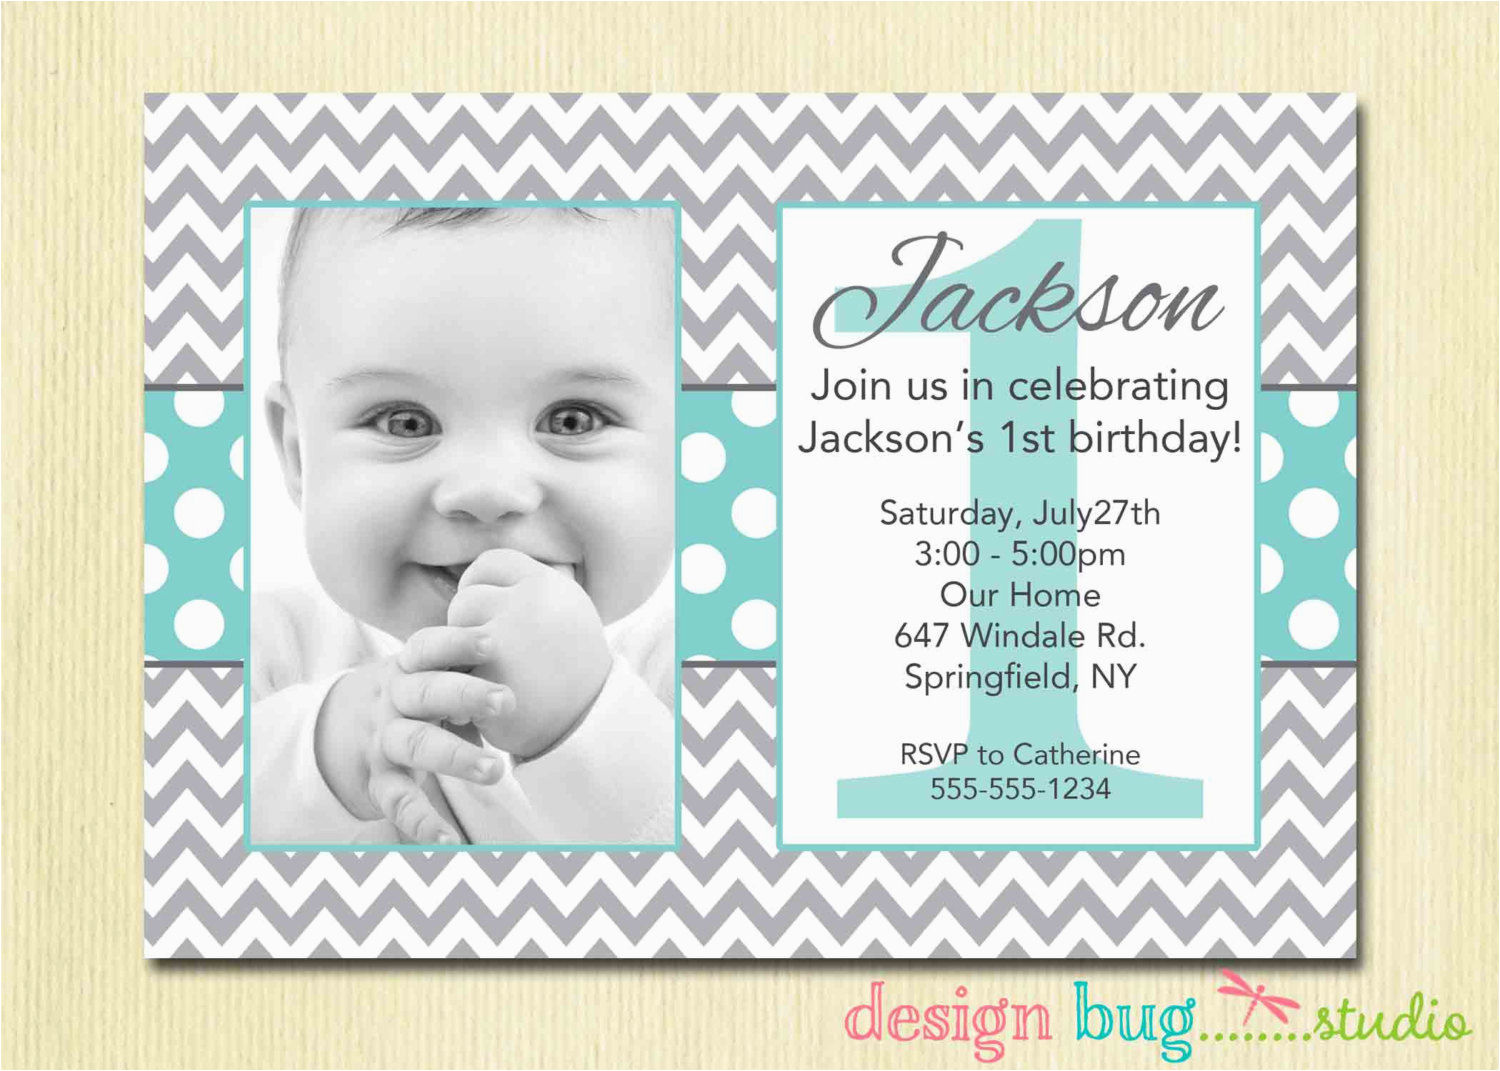 Birthday Invitation For 4 Year Old Boy 2 Invitations Librarry